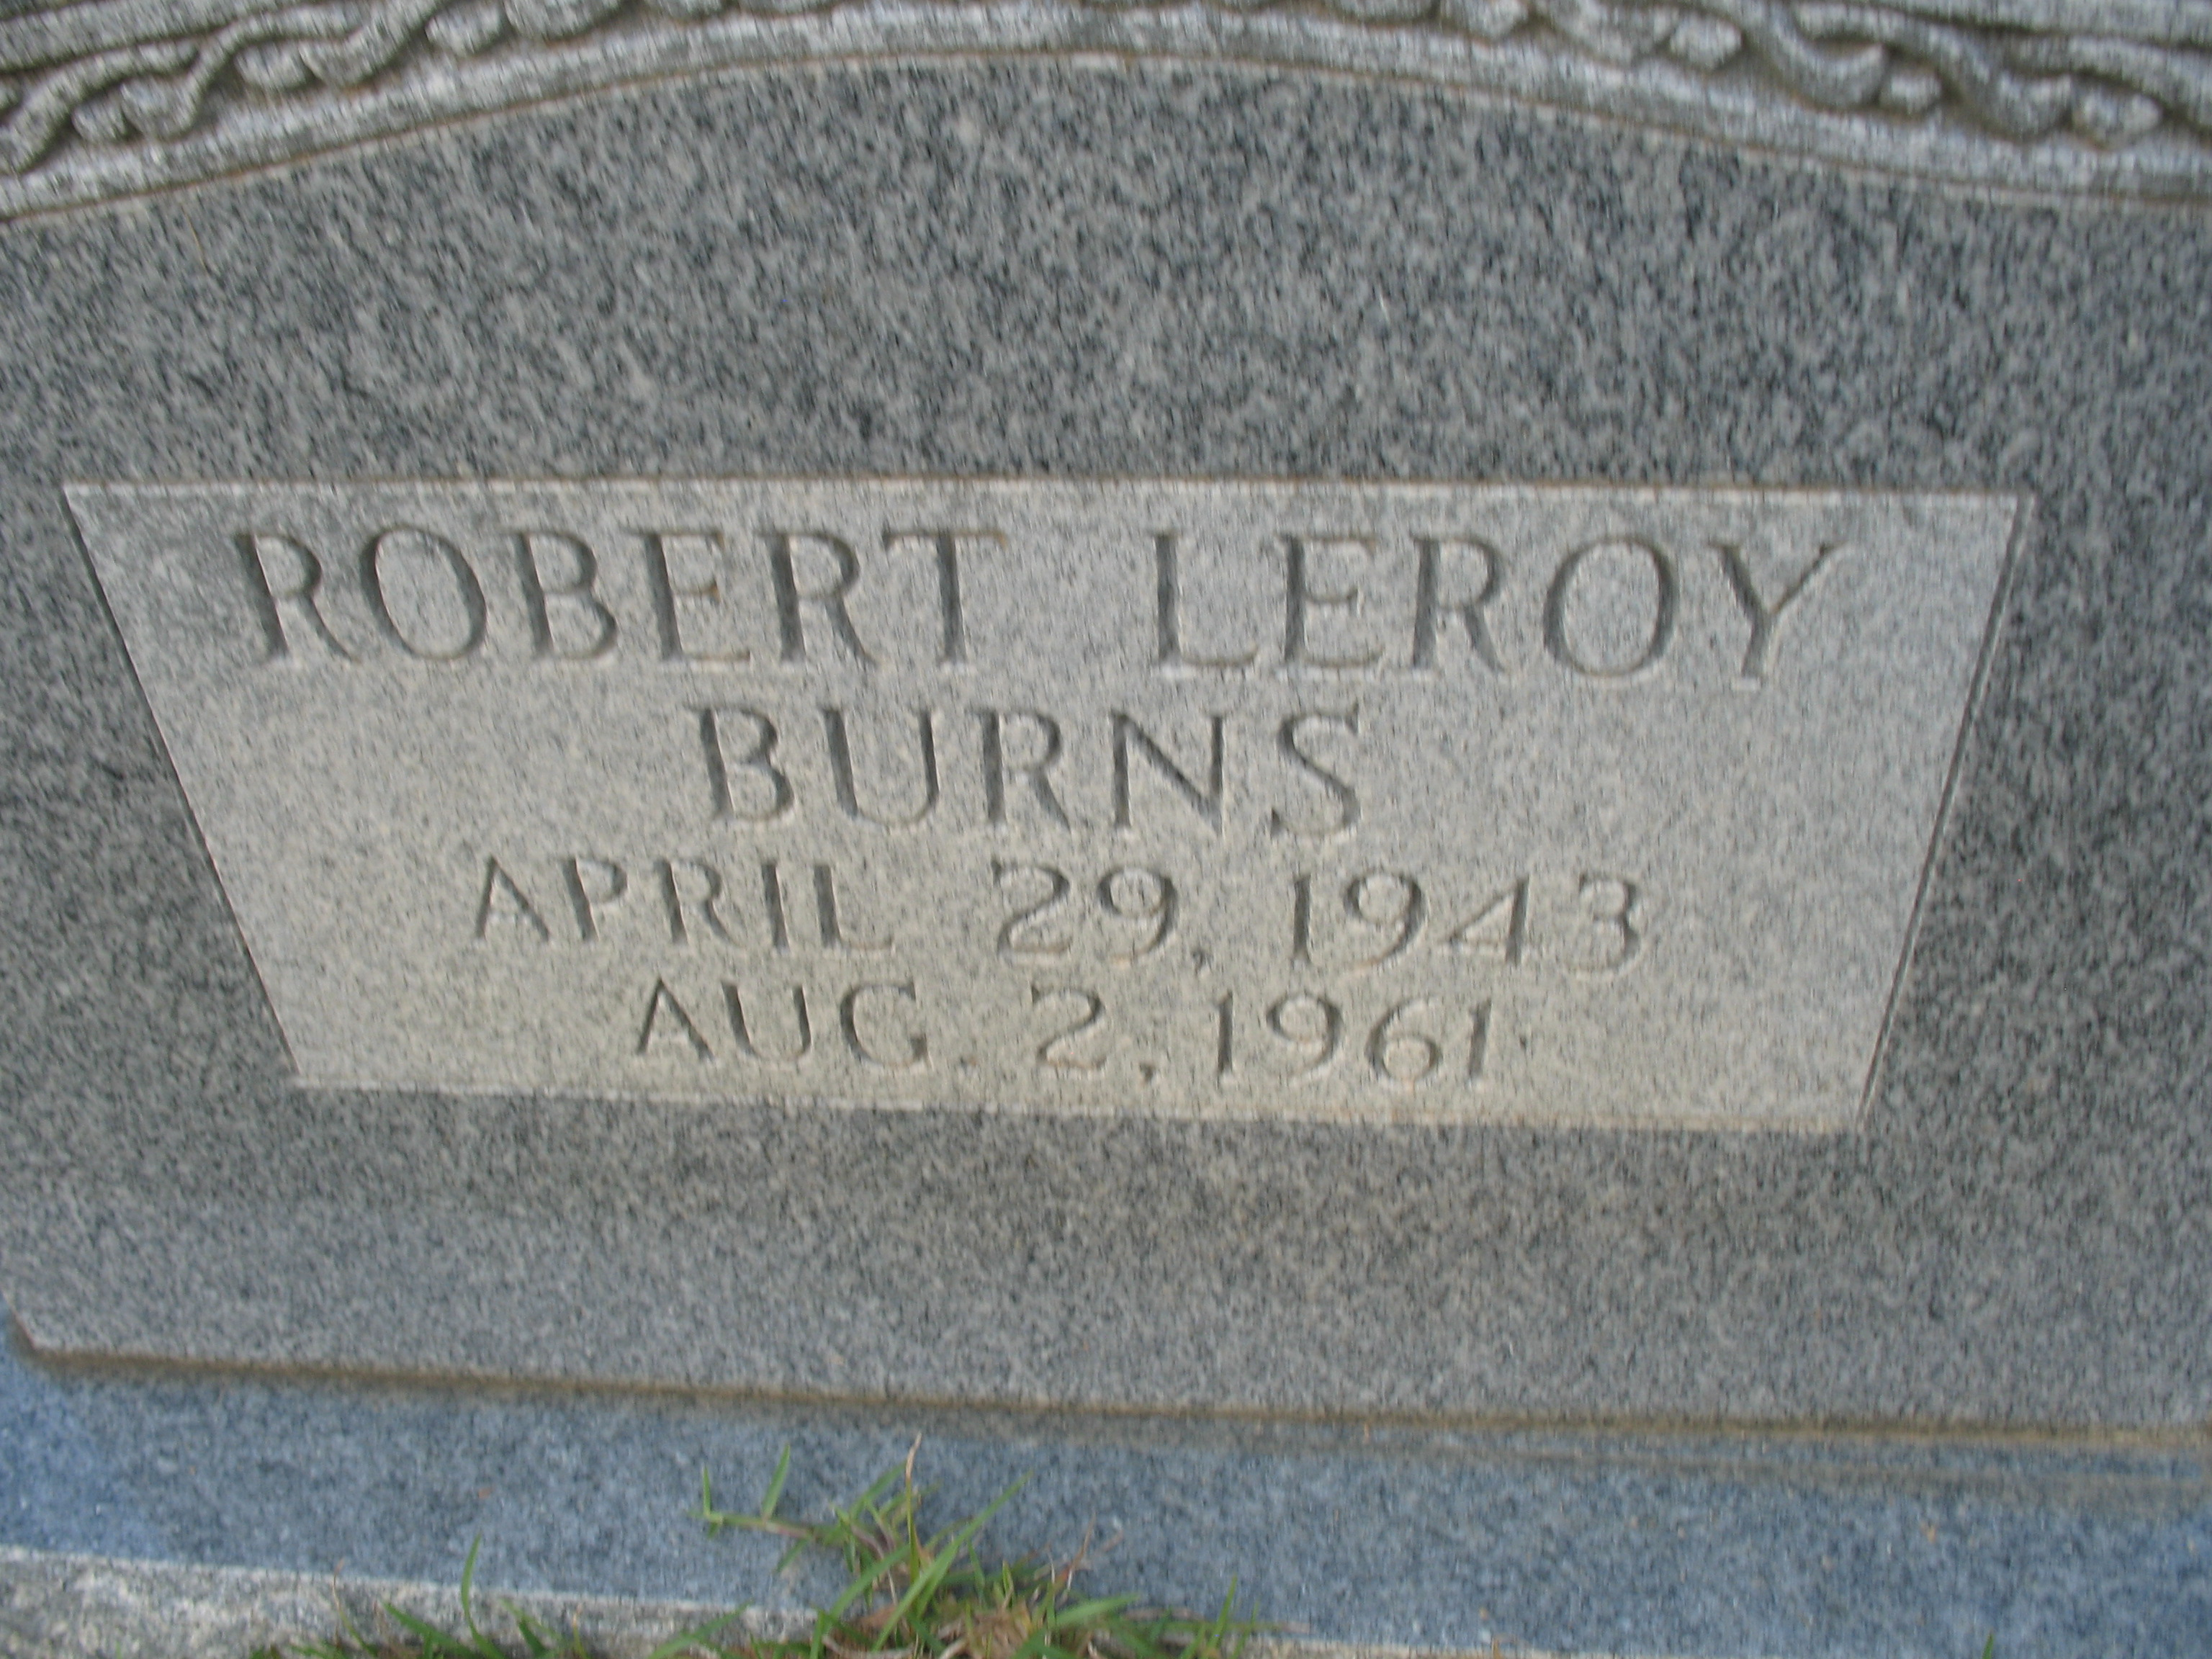 Robert Leroy Burns